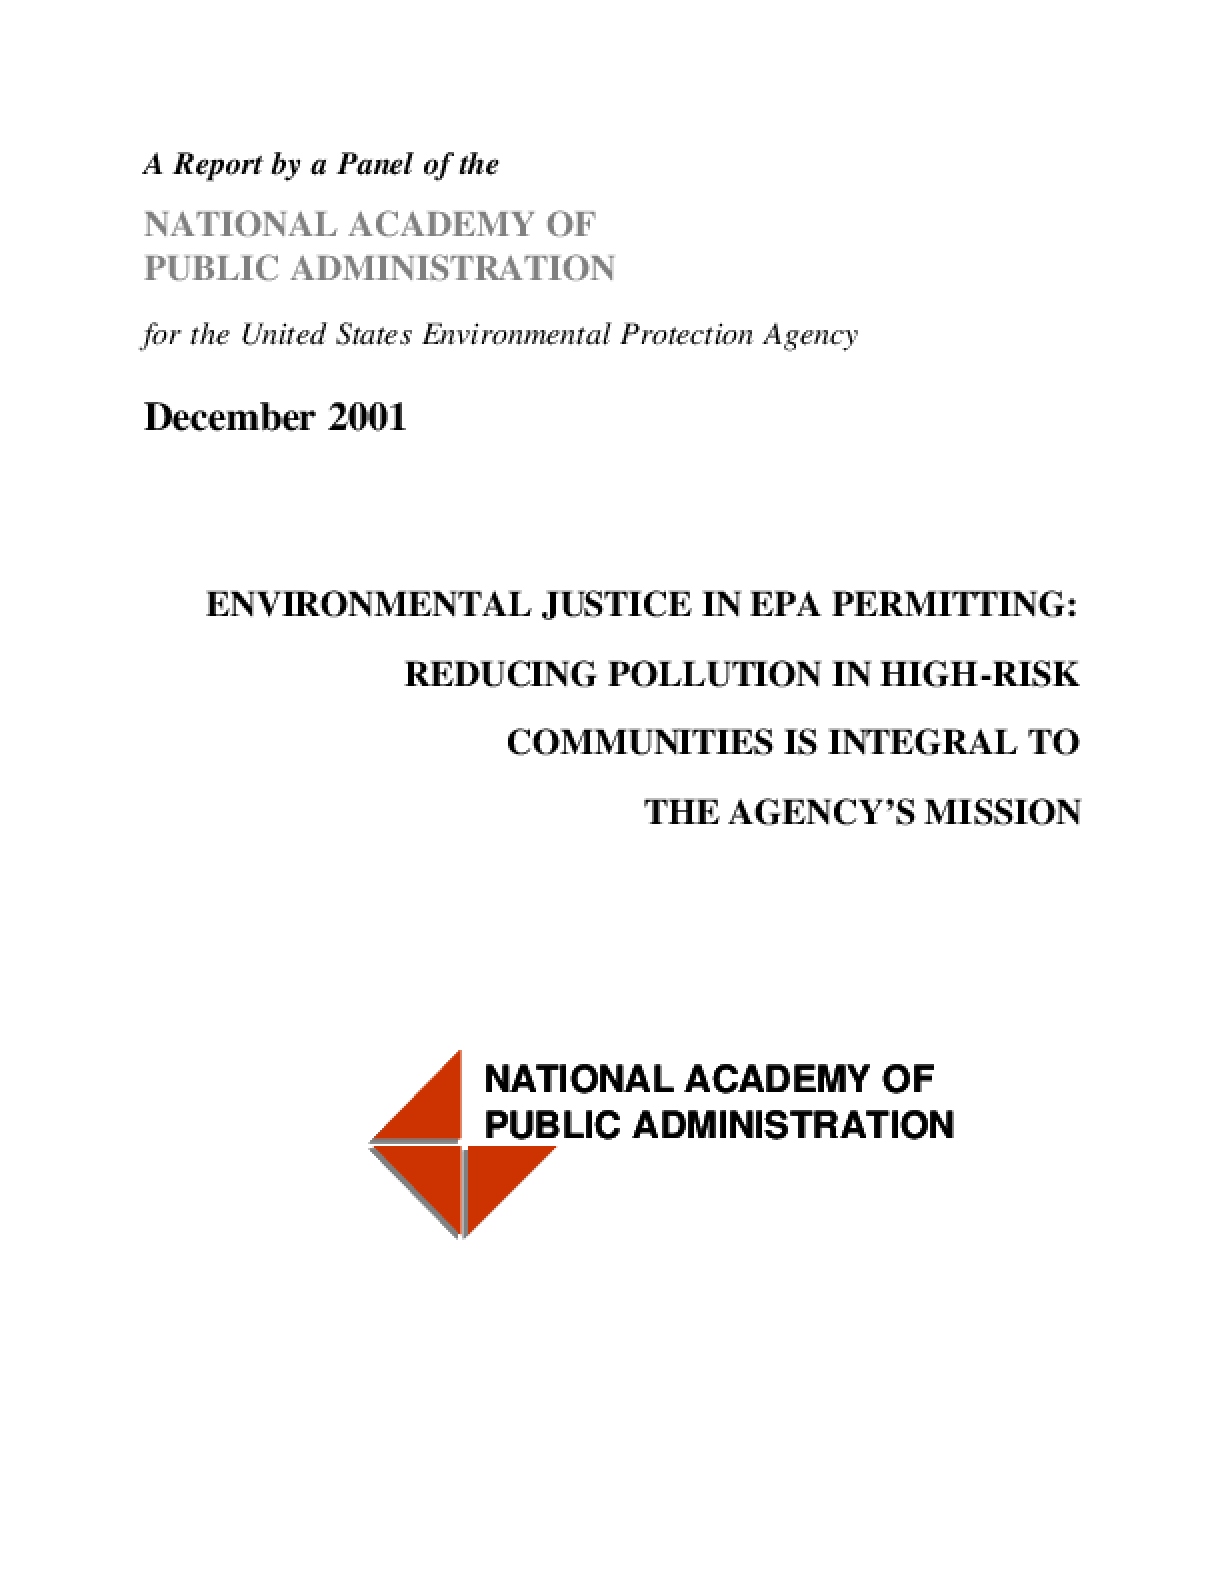 Environmental Justice in EPA Permitting: Reducing Pollution in High-Risk Communities is Integral to the Agency's Mission